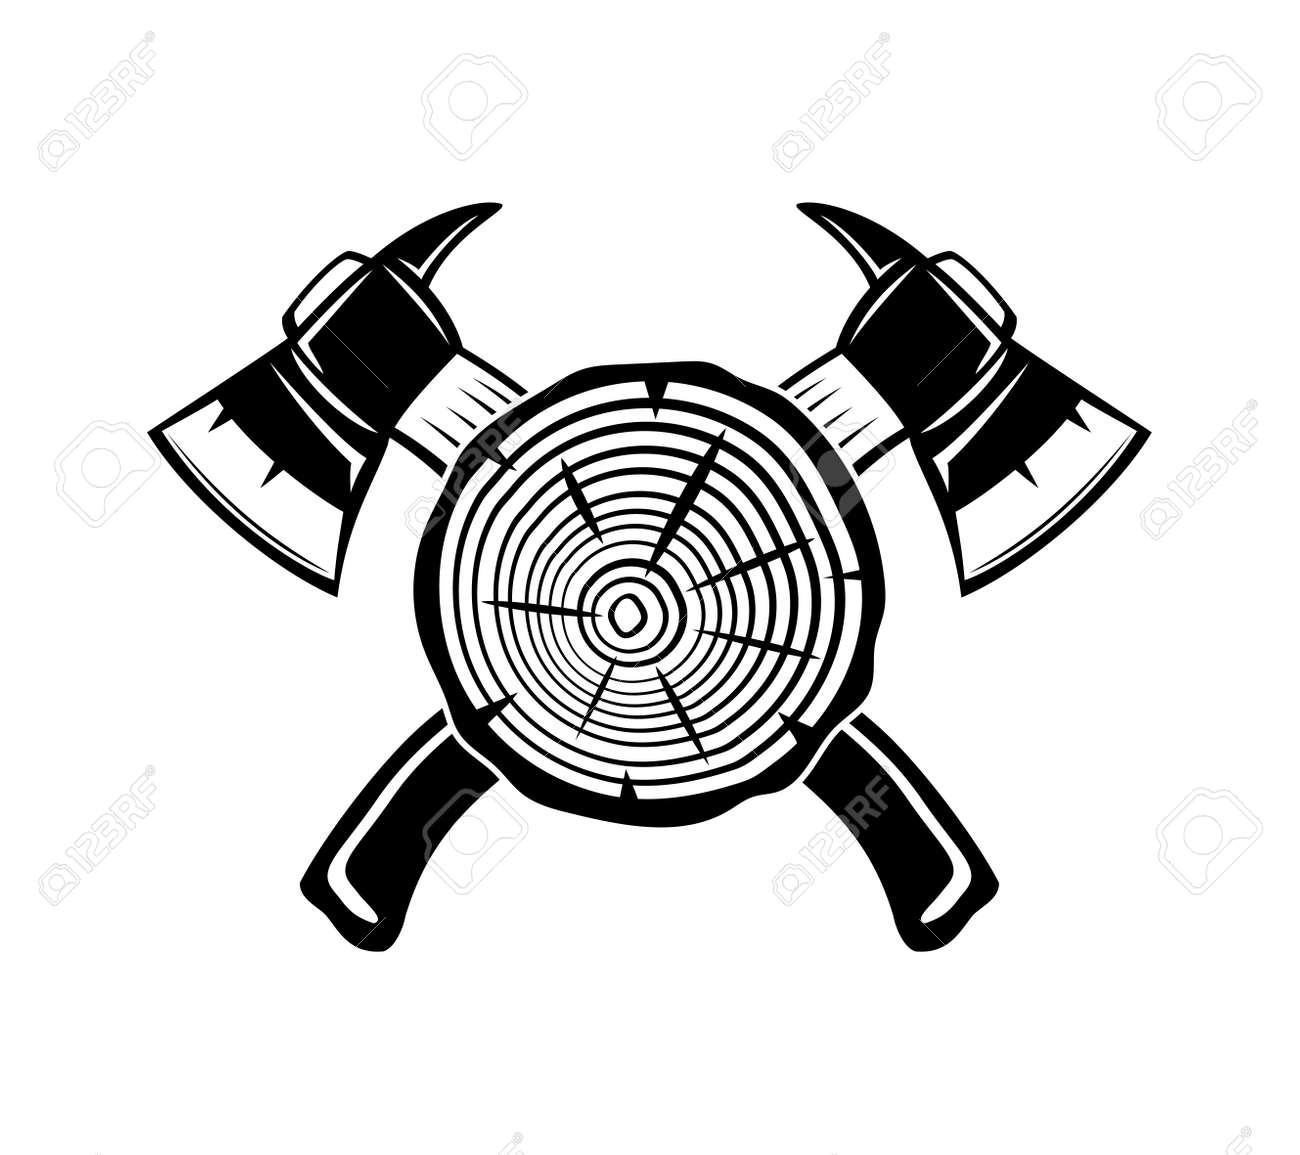 Illustration with two crossed axes and wooden element on white background. - 168969138